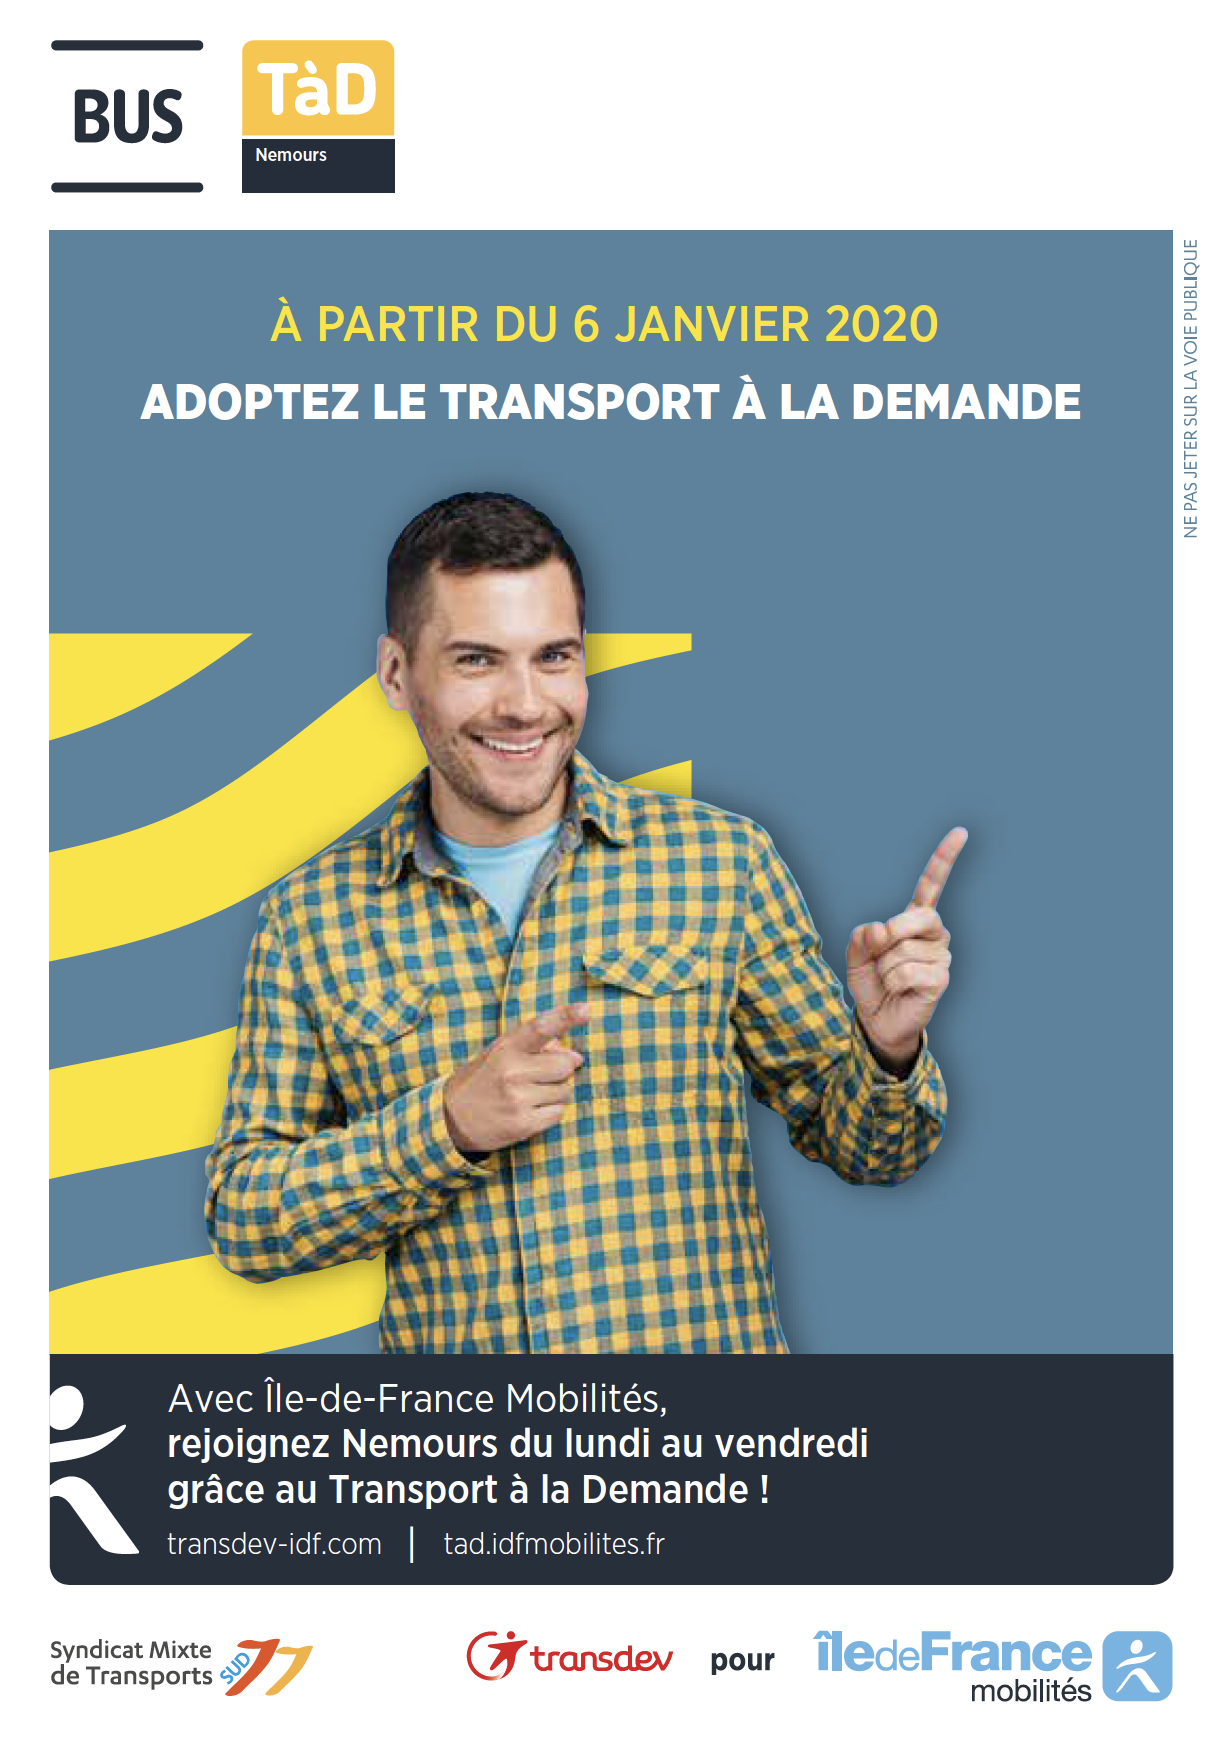 TAD AFFICHE.png